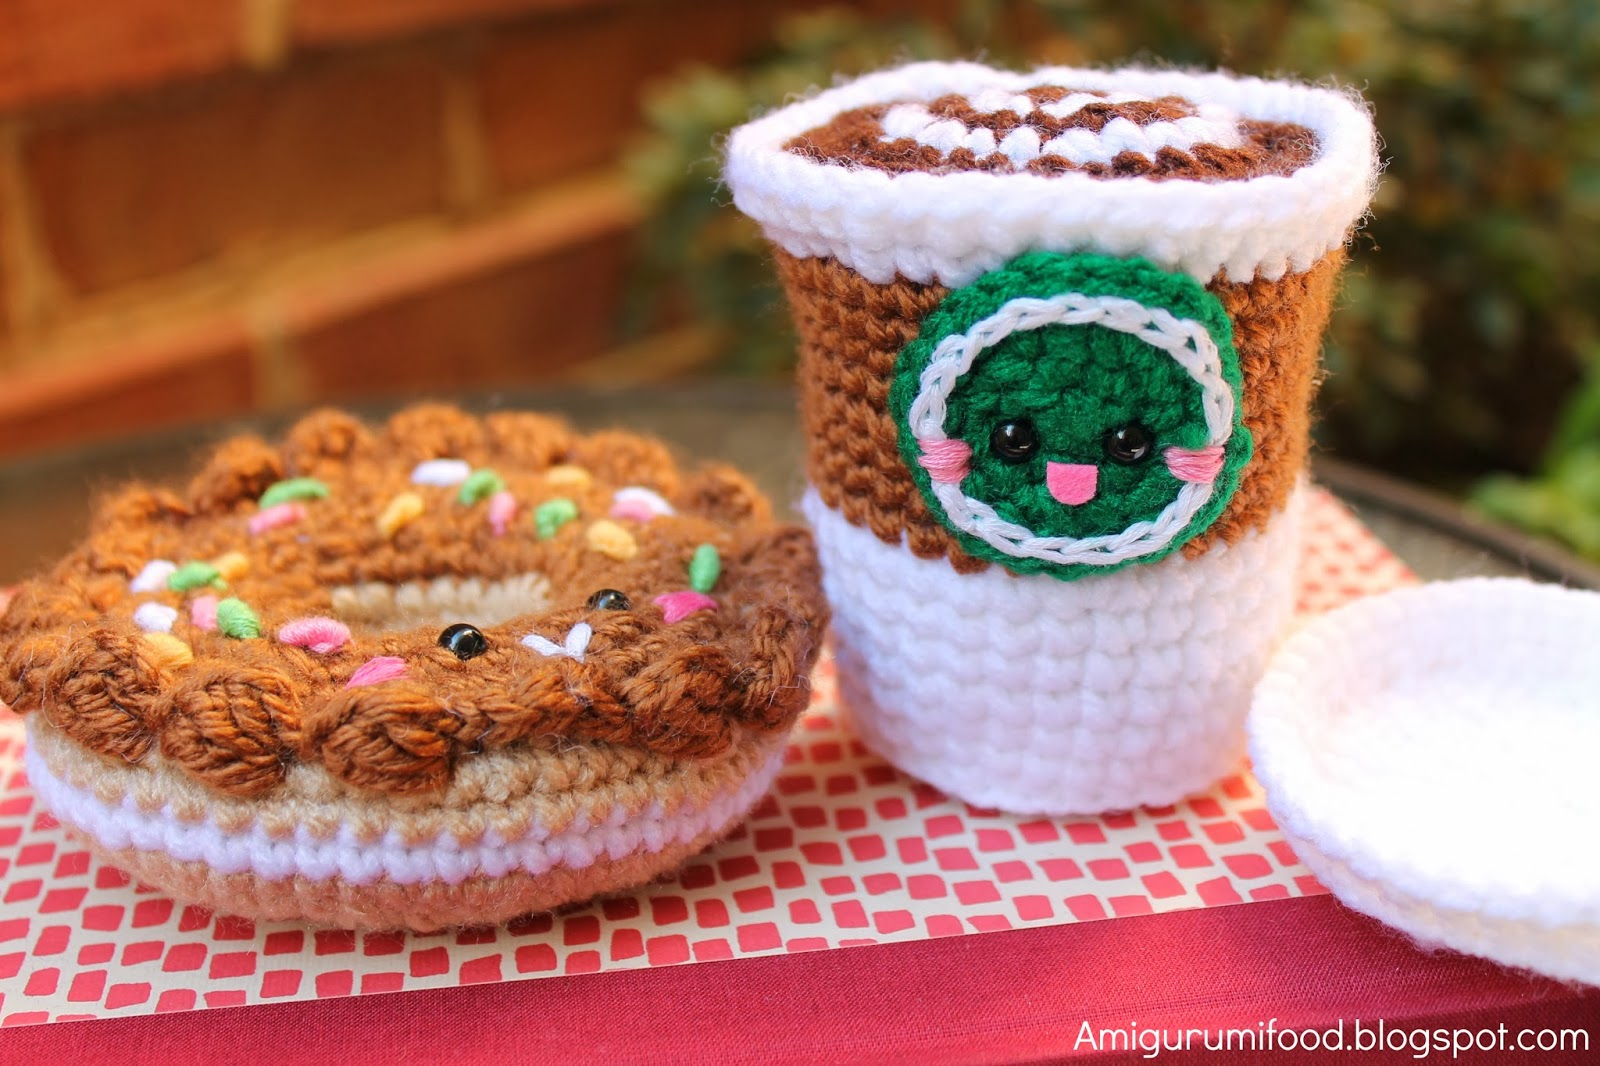 Amigurumi Food: New update Donut Amigurumi!!